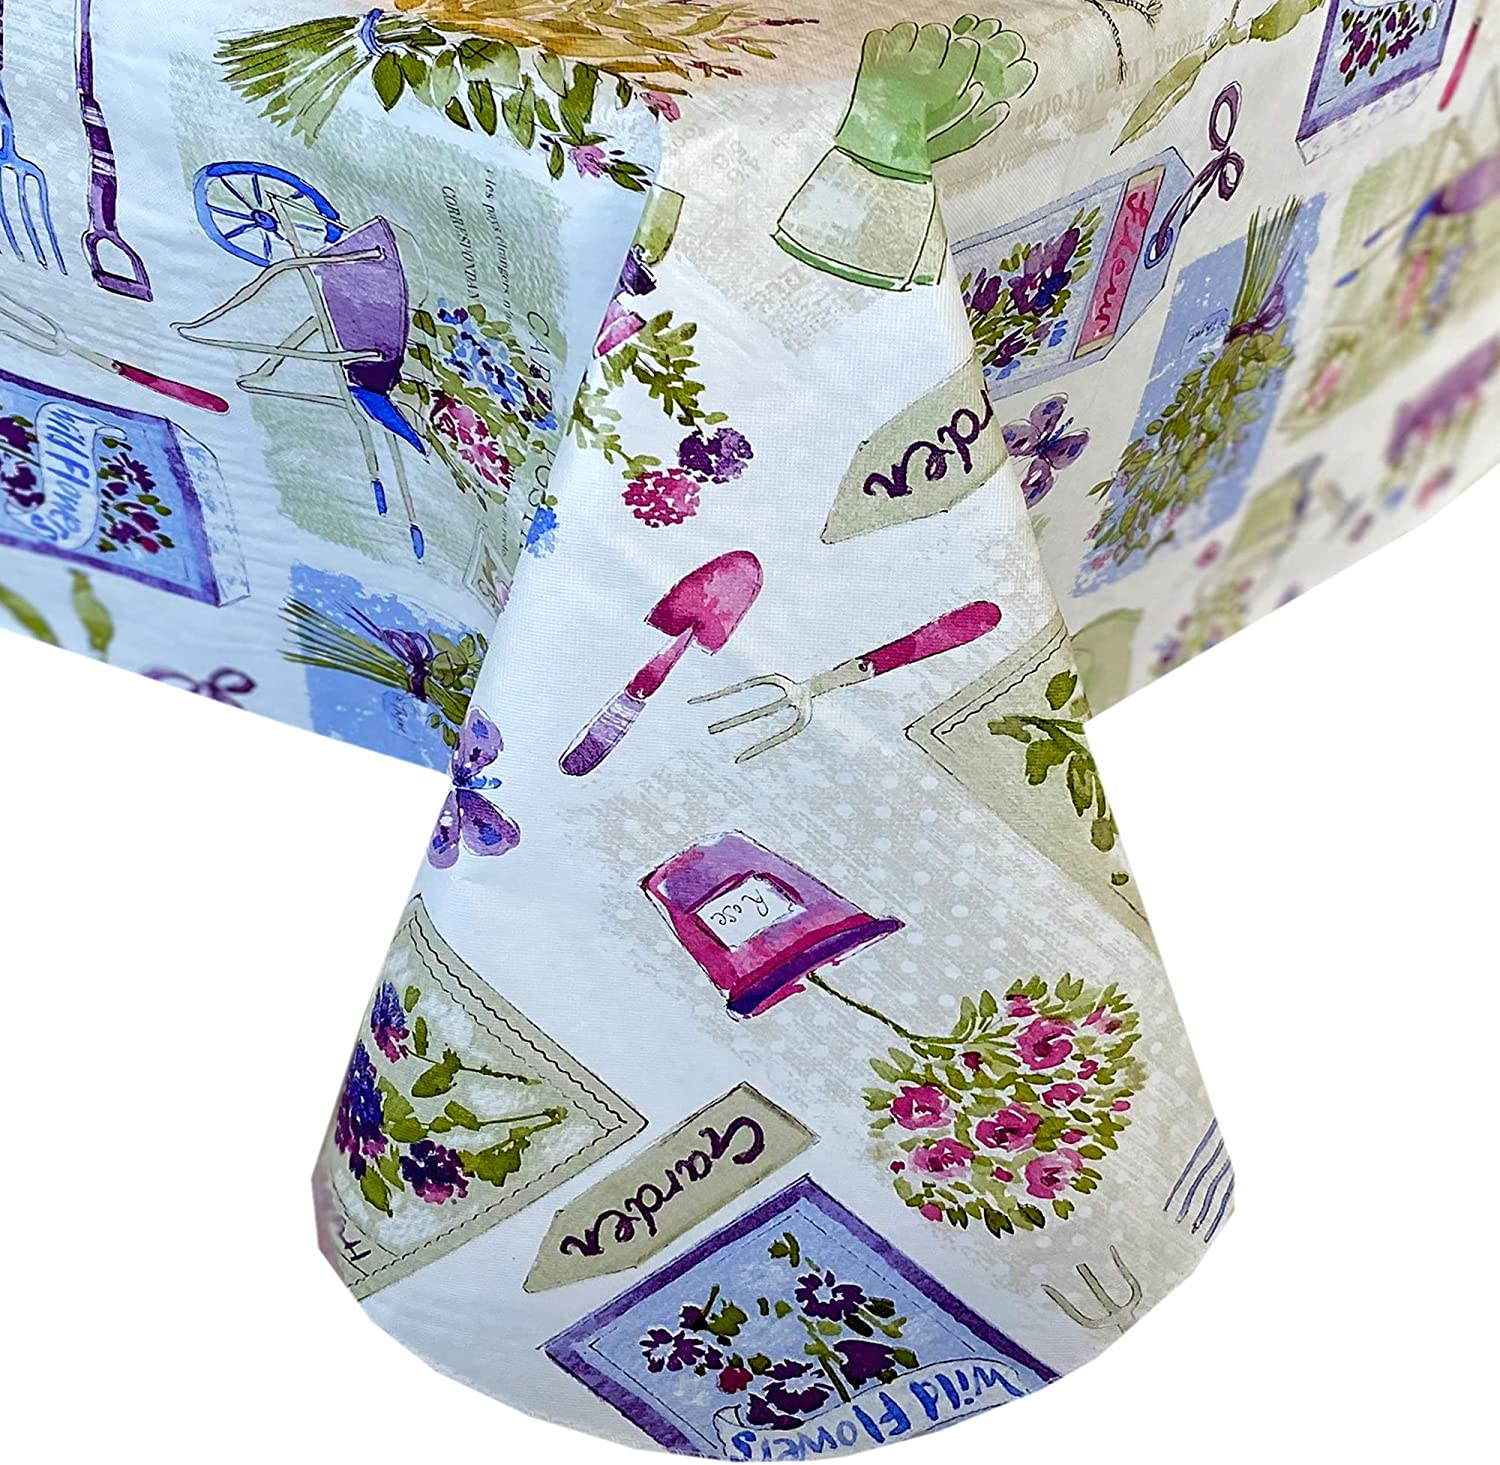 """Newbridge Garden Party Spring and Summer Vinyl Flannel Backed Tablecloth - Cottage Garden, Butterflies and Bouquets Easy Care Indoor/Outdoor Tablecloth, 60"""" x 102"""" Oblong/Rectangle"""